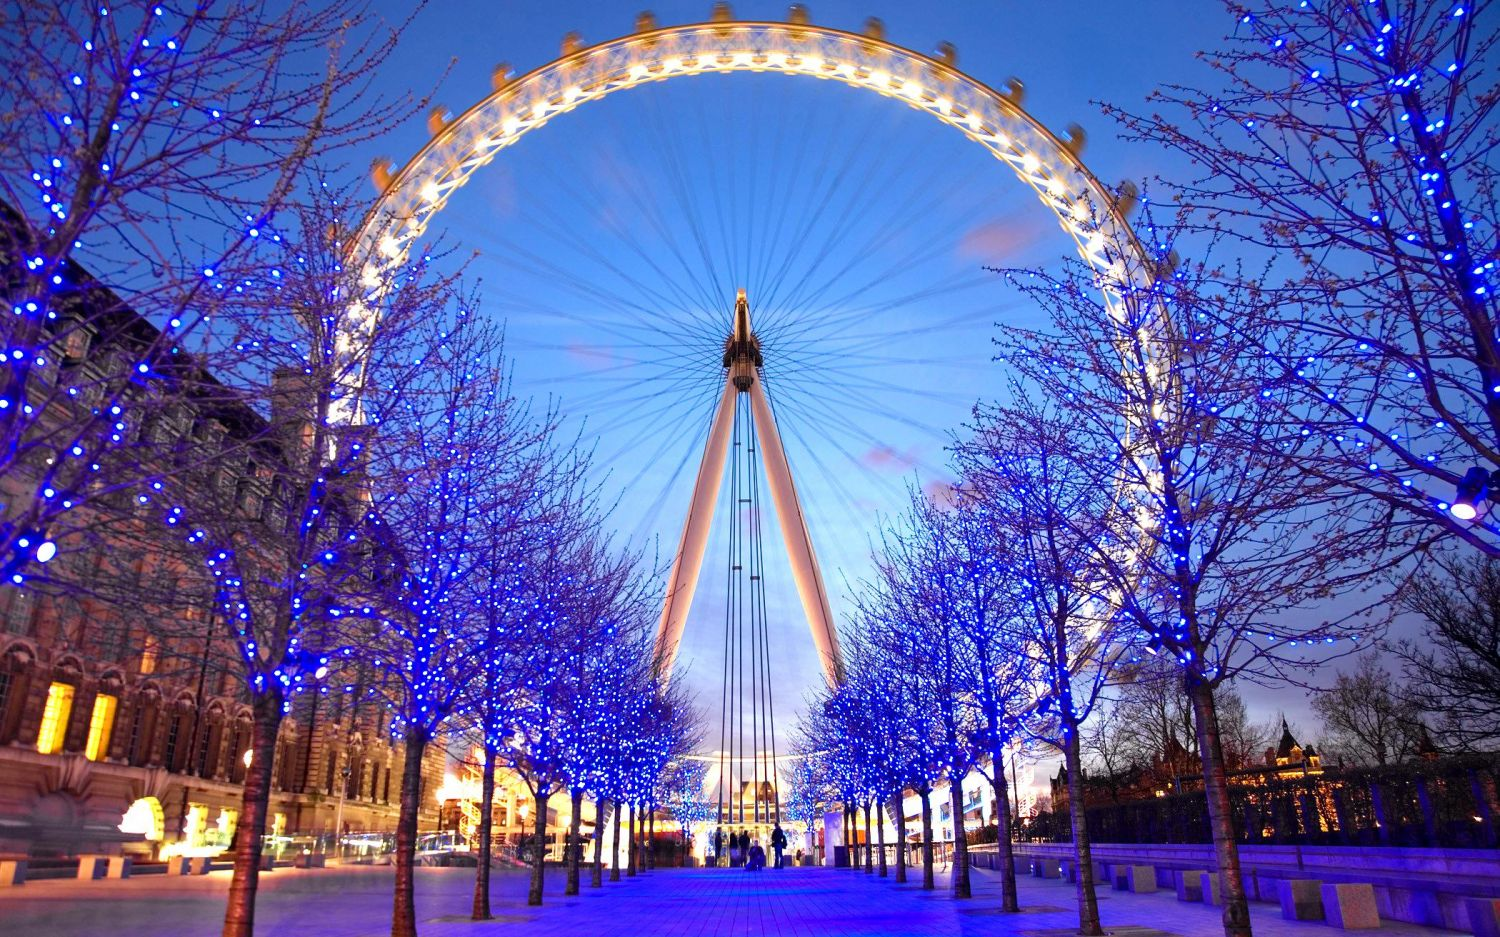 london_path_london_eye_ferris_wheel_trees_blue_christmas_lights-18133.jpg